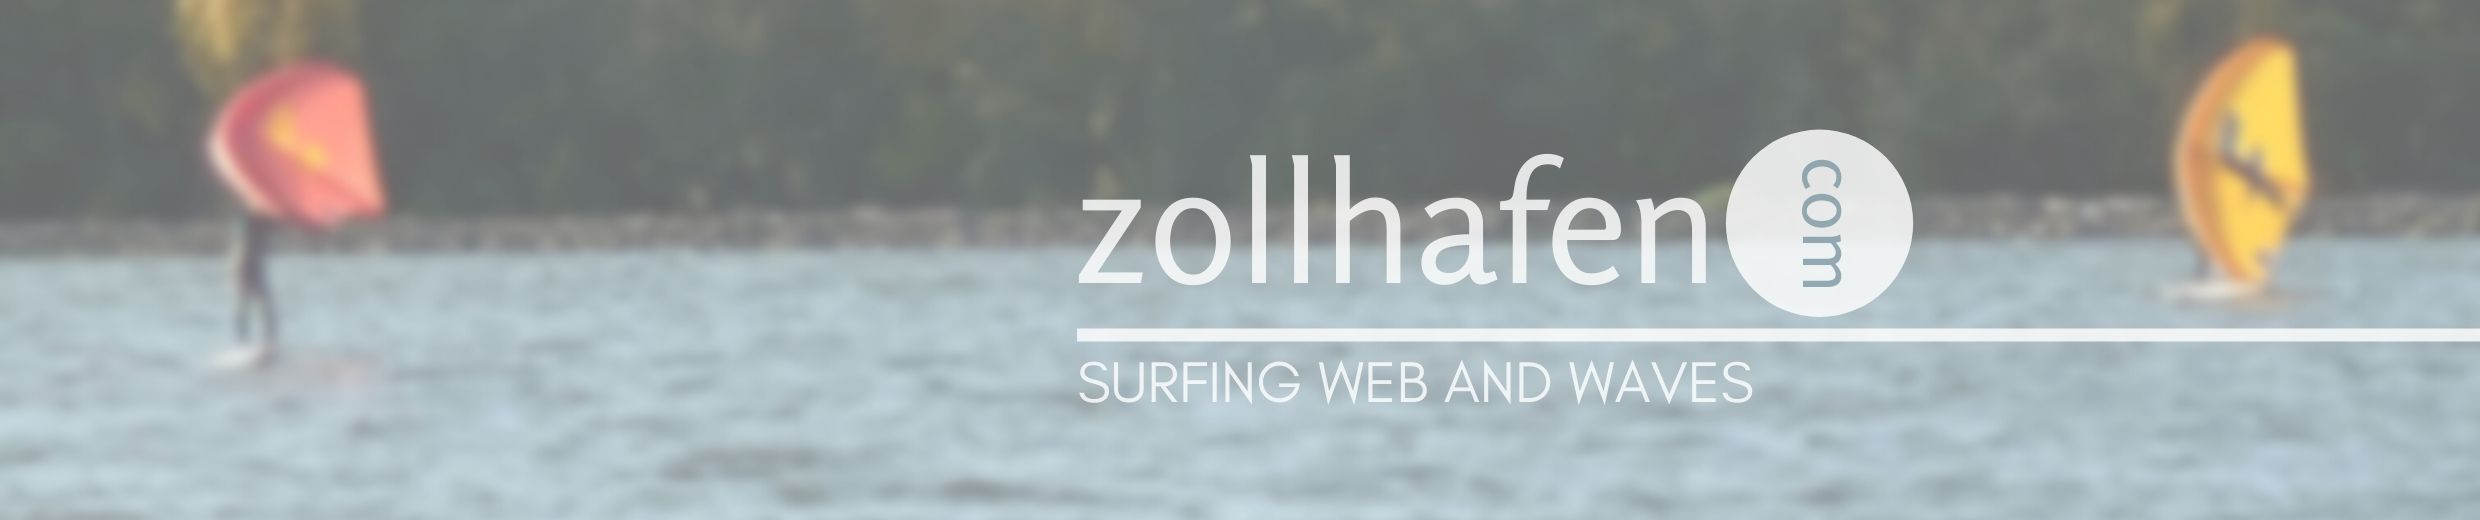 zollhafen.com surfing web and waves